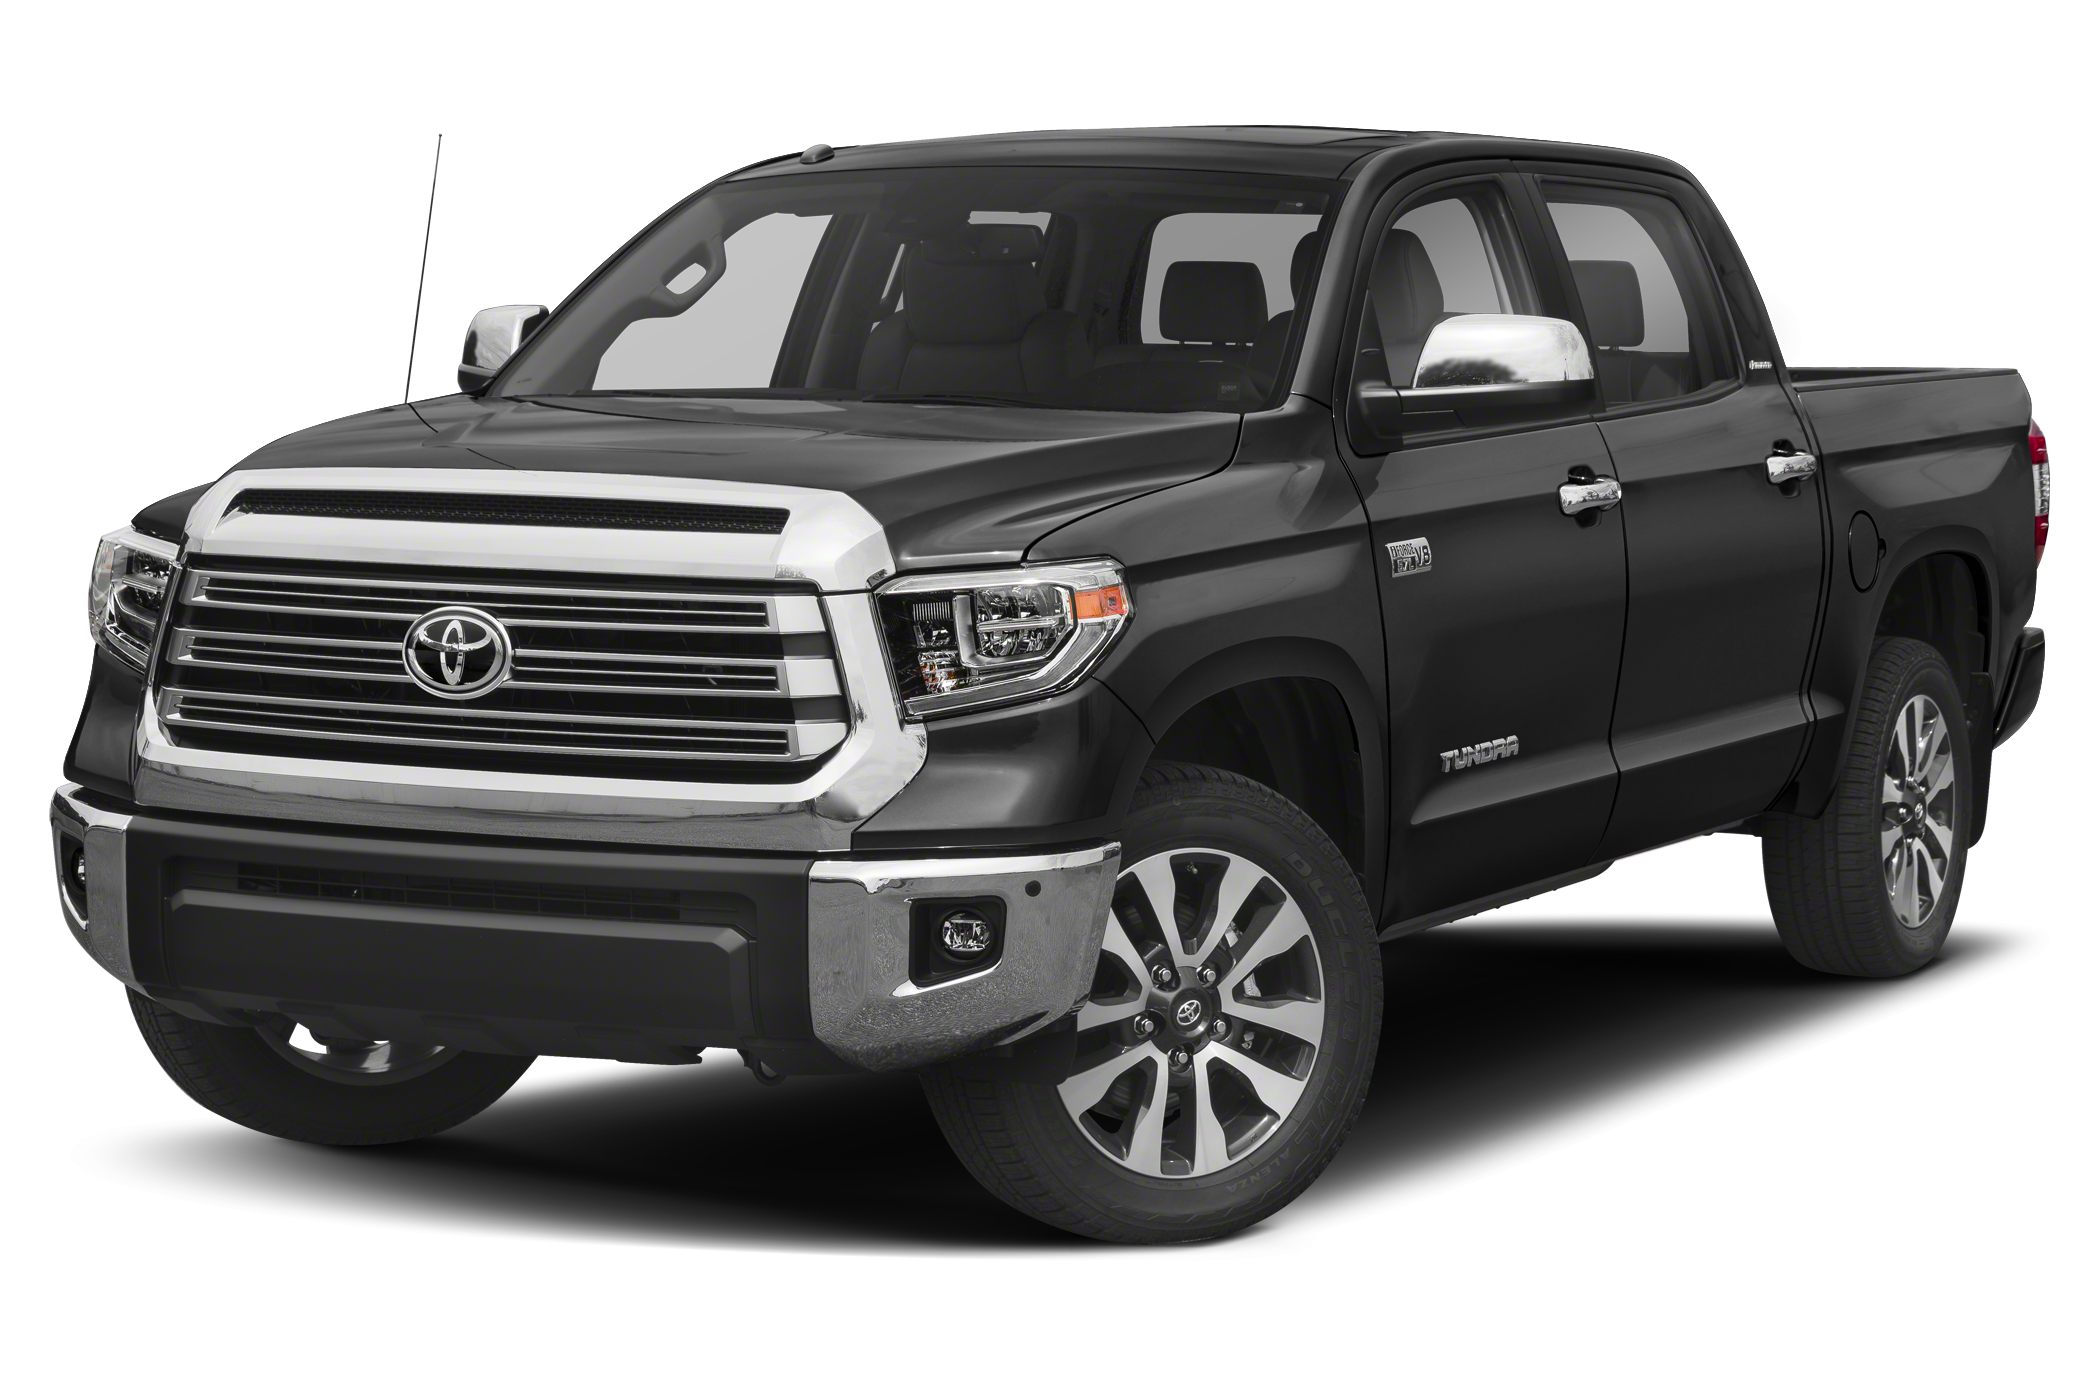 Toyota Tundra Platinum >> 2019 Toyota Tundra Platinum 5 7l V8 4x4 Crewmax 5 6 Ft Box 145 7 In Wb Pricing And Options